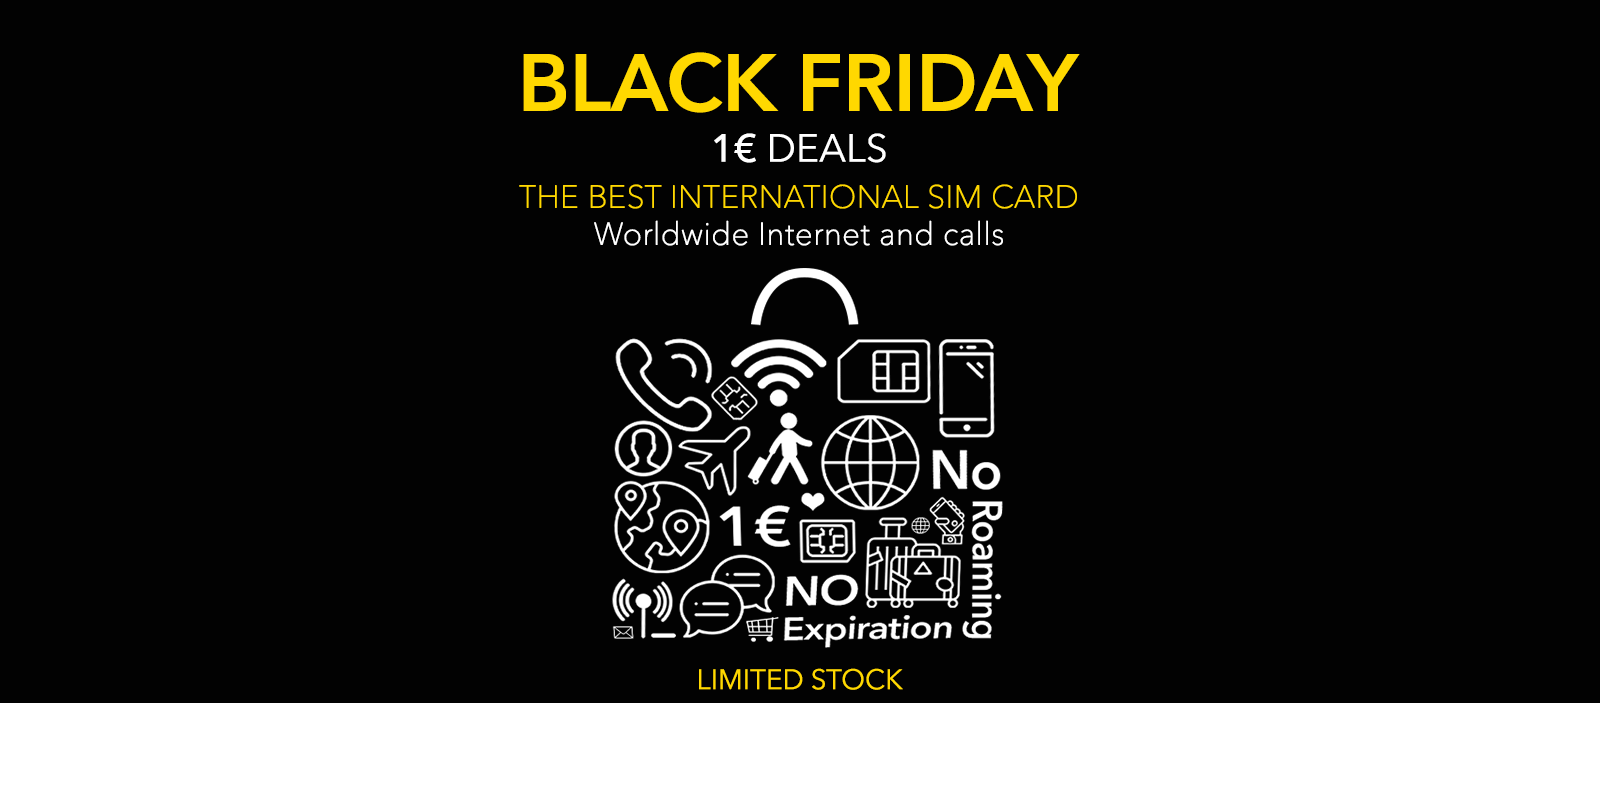 Black Friday 2018 How To Find The Best Deals And Discounts By Bnesim Medium